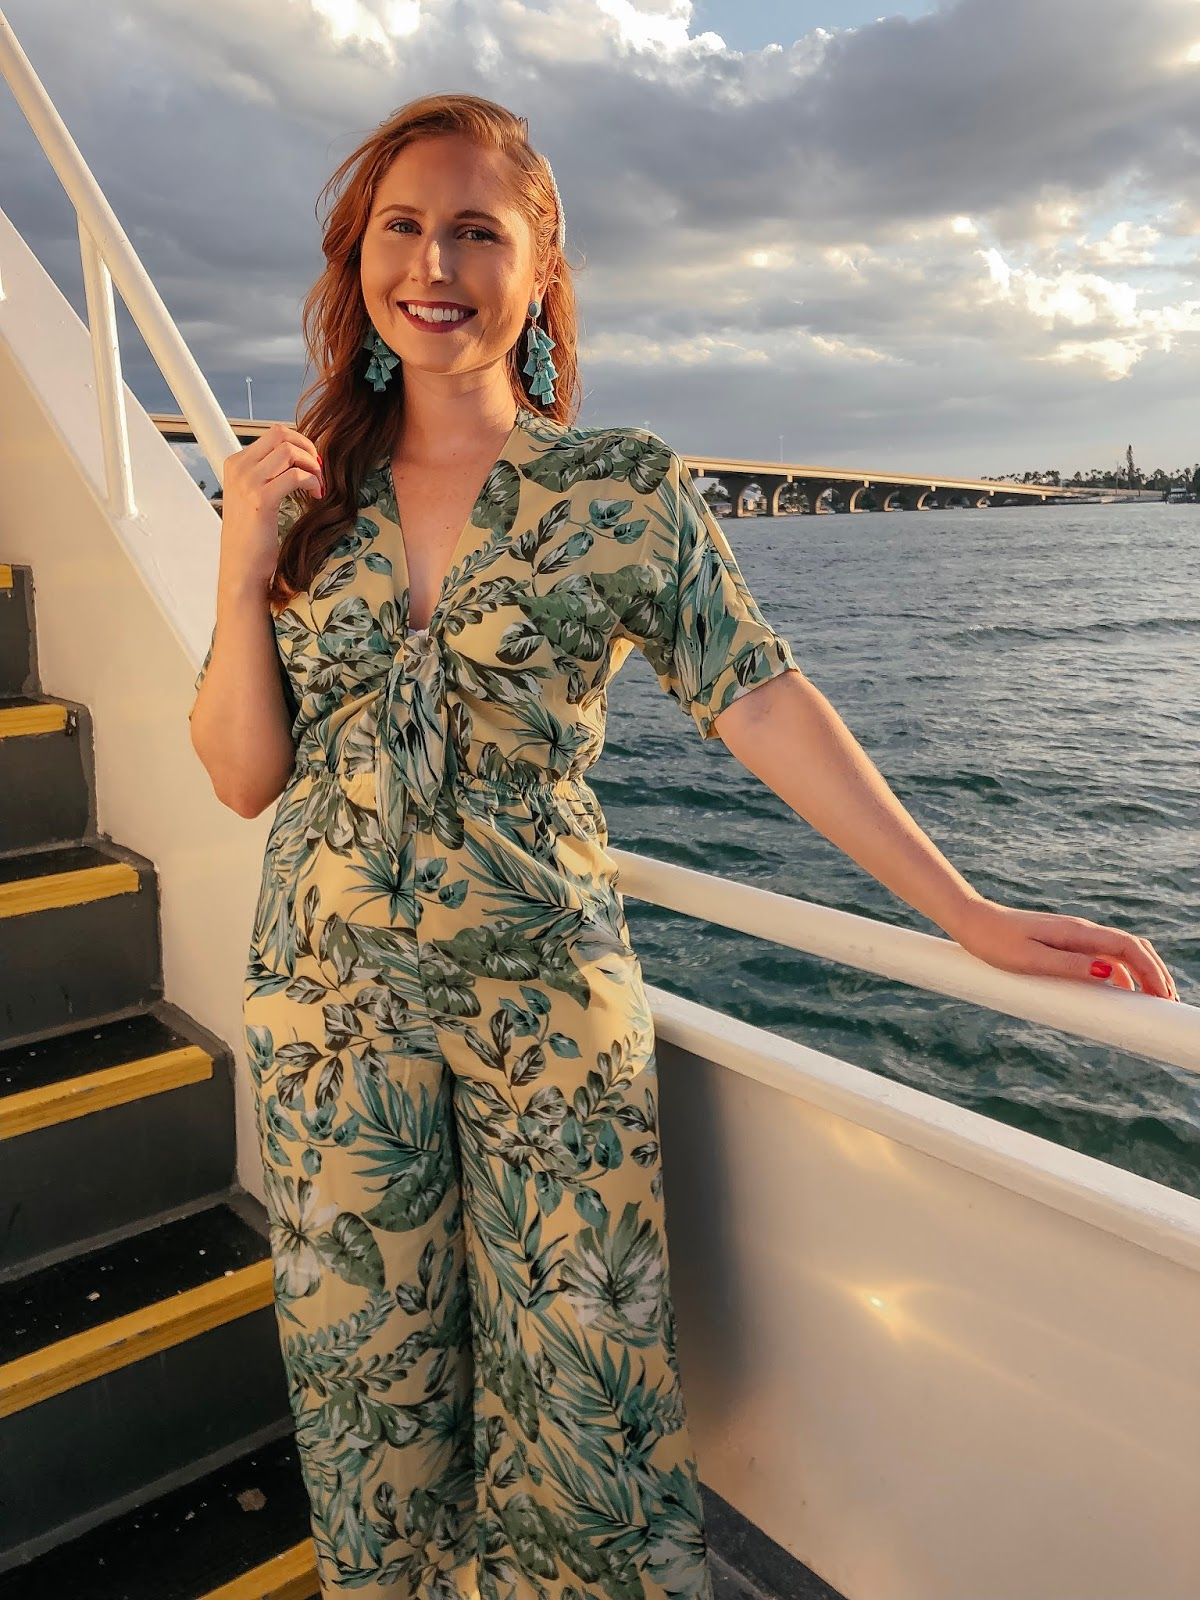 amanda burrows, blogger at affordable by amanda, is wearing a yellow and green palm print jumpsuit with a tie detail from Bealls Outlet. She is onboard of the Starlite Cruise that leaves from St. Pete Beach, Florida